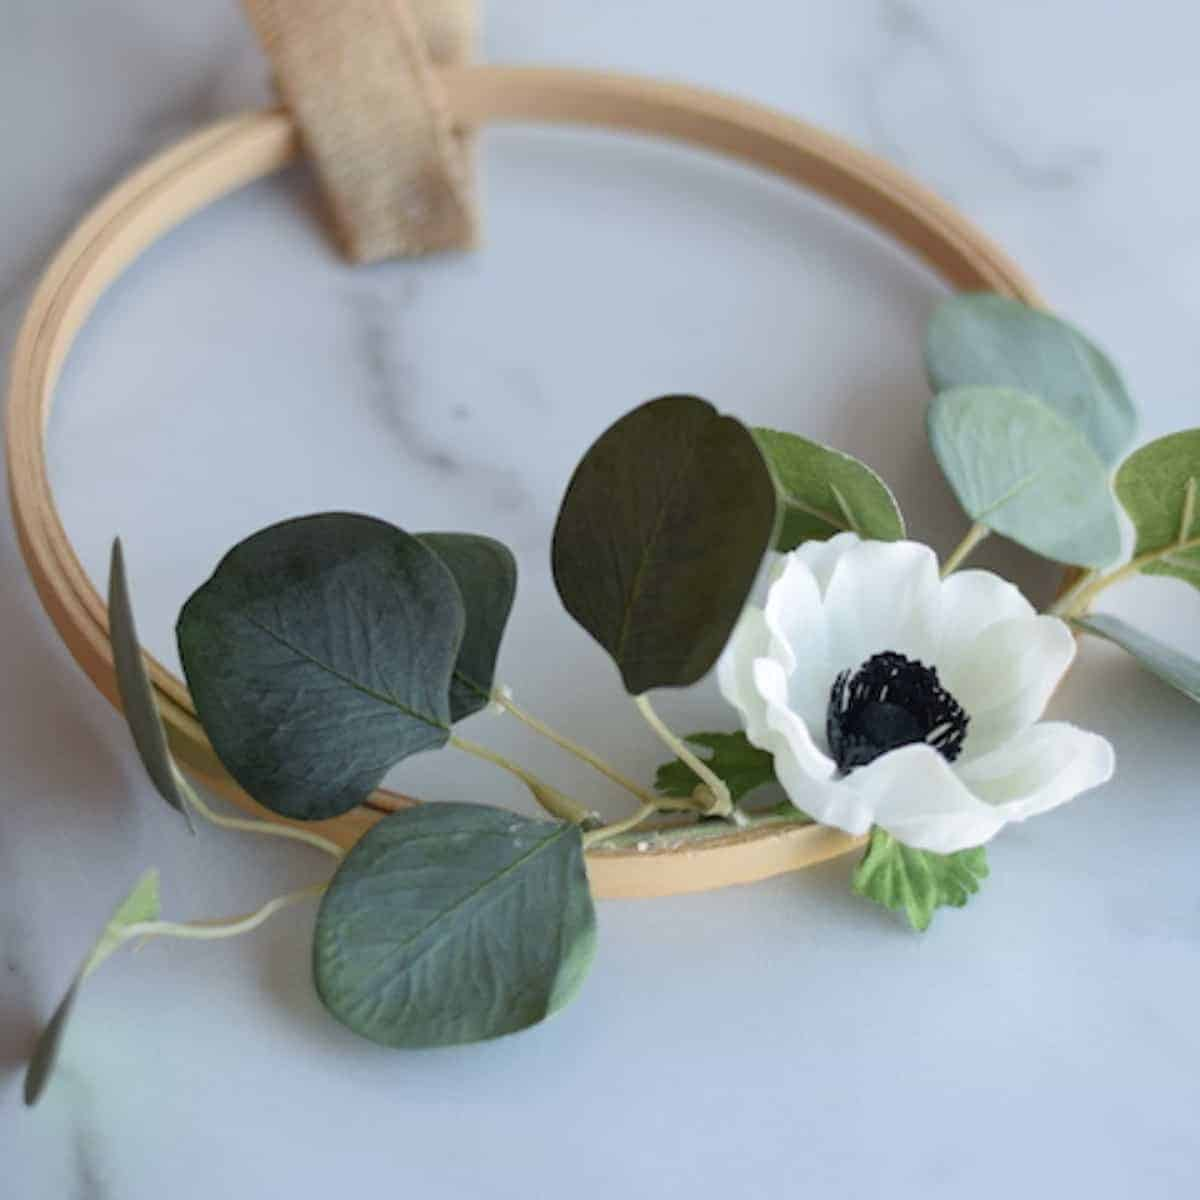 white floral embroidery hoop wreath with eucalyptus leaves